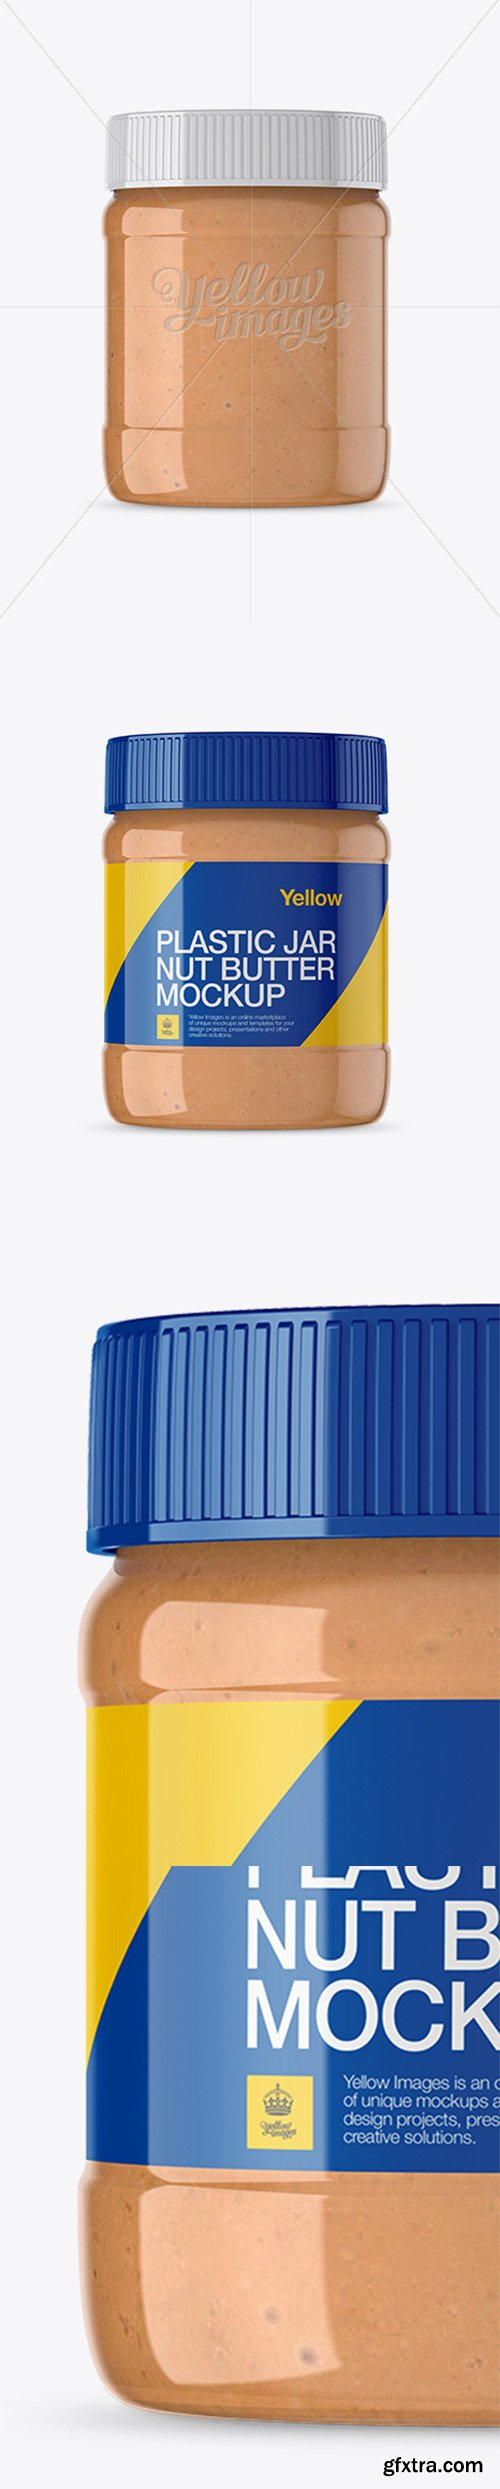 Glass Jar w/ Nut Butter Mockup - Front View 14144